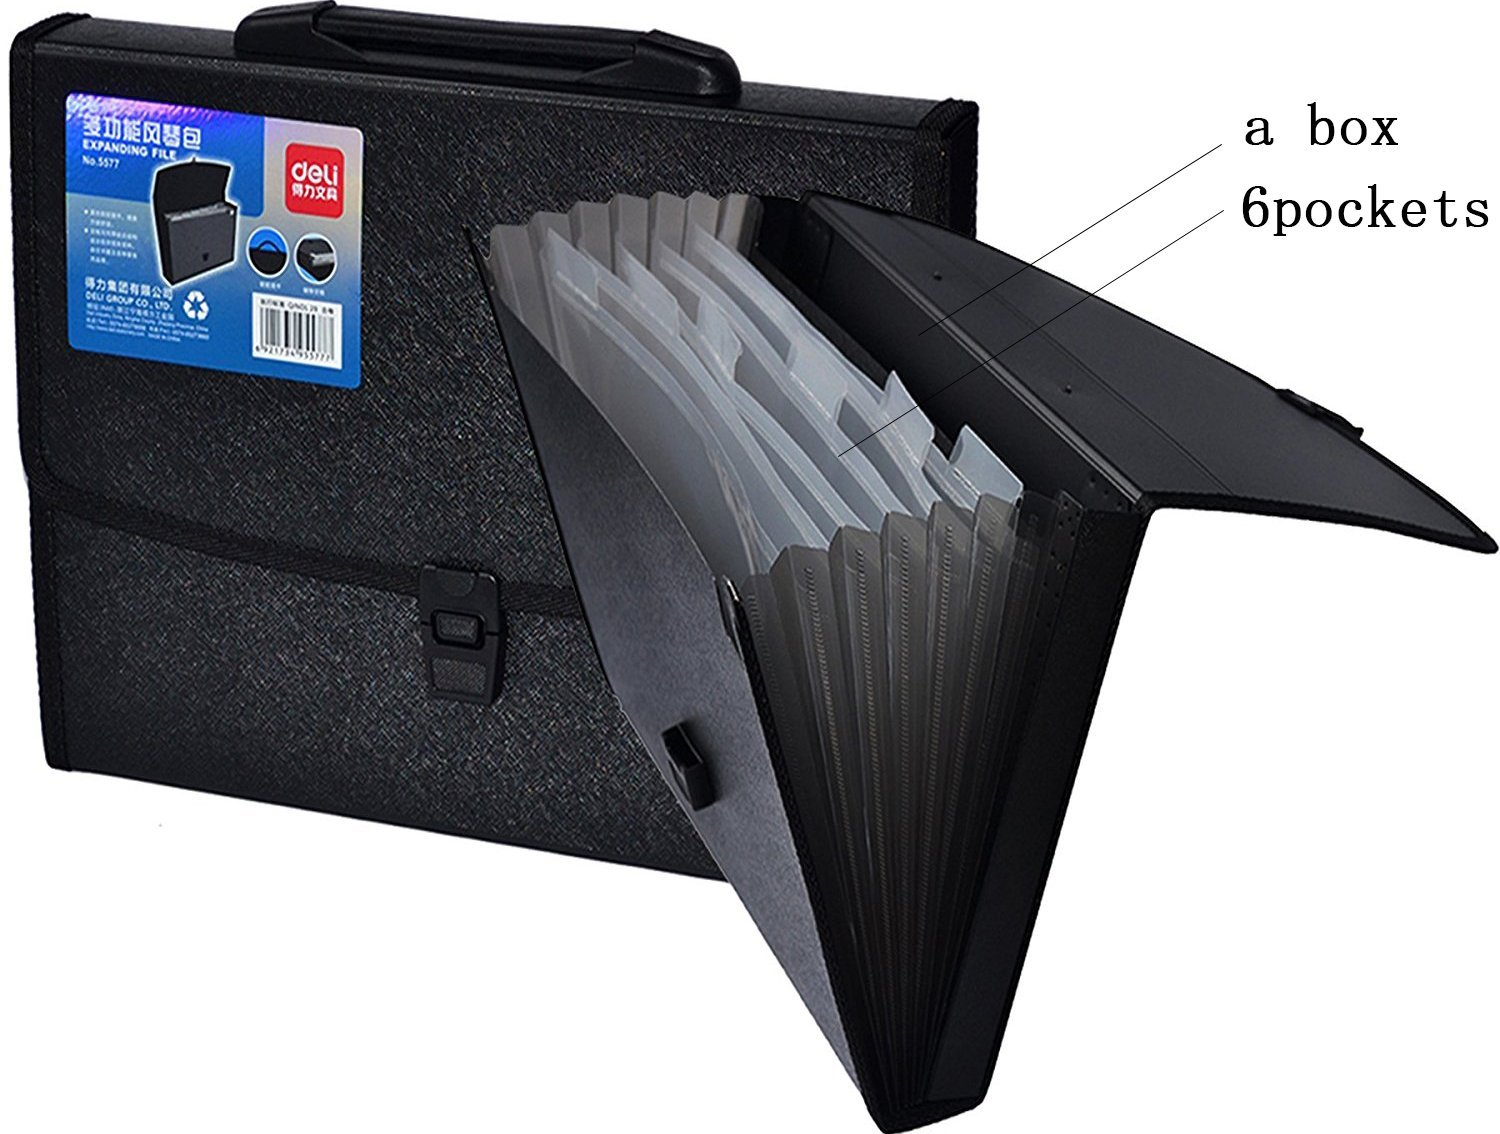 deli 7 pockets with a file boxa4 and letter size expanding accordion file folder - Accordion Folder